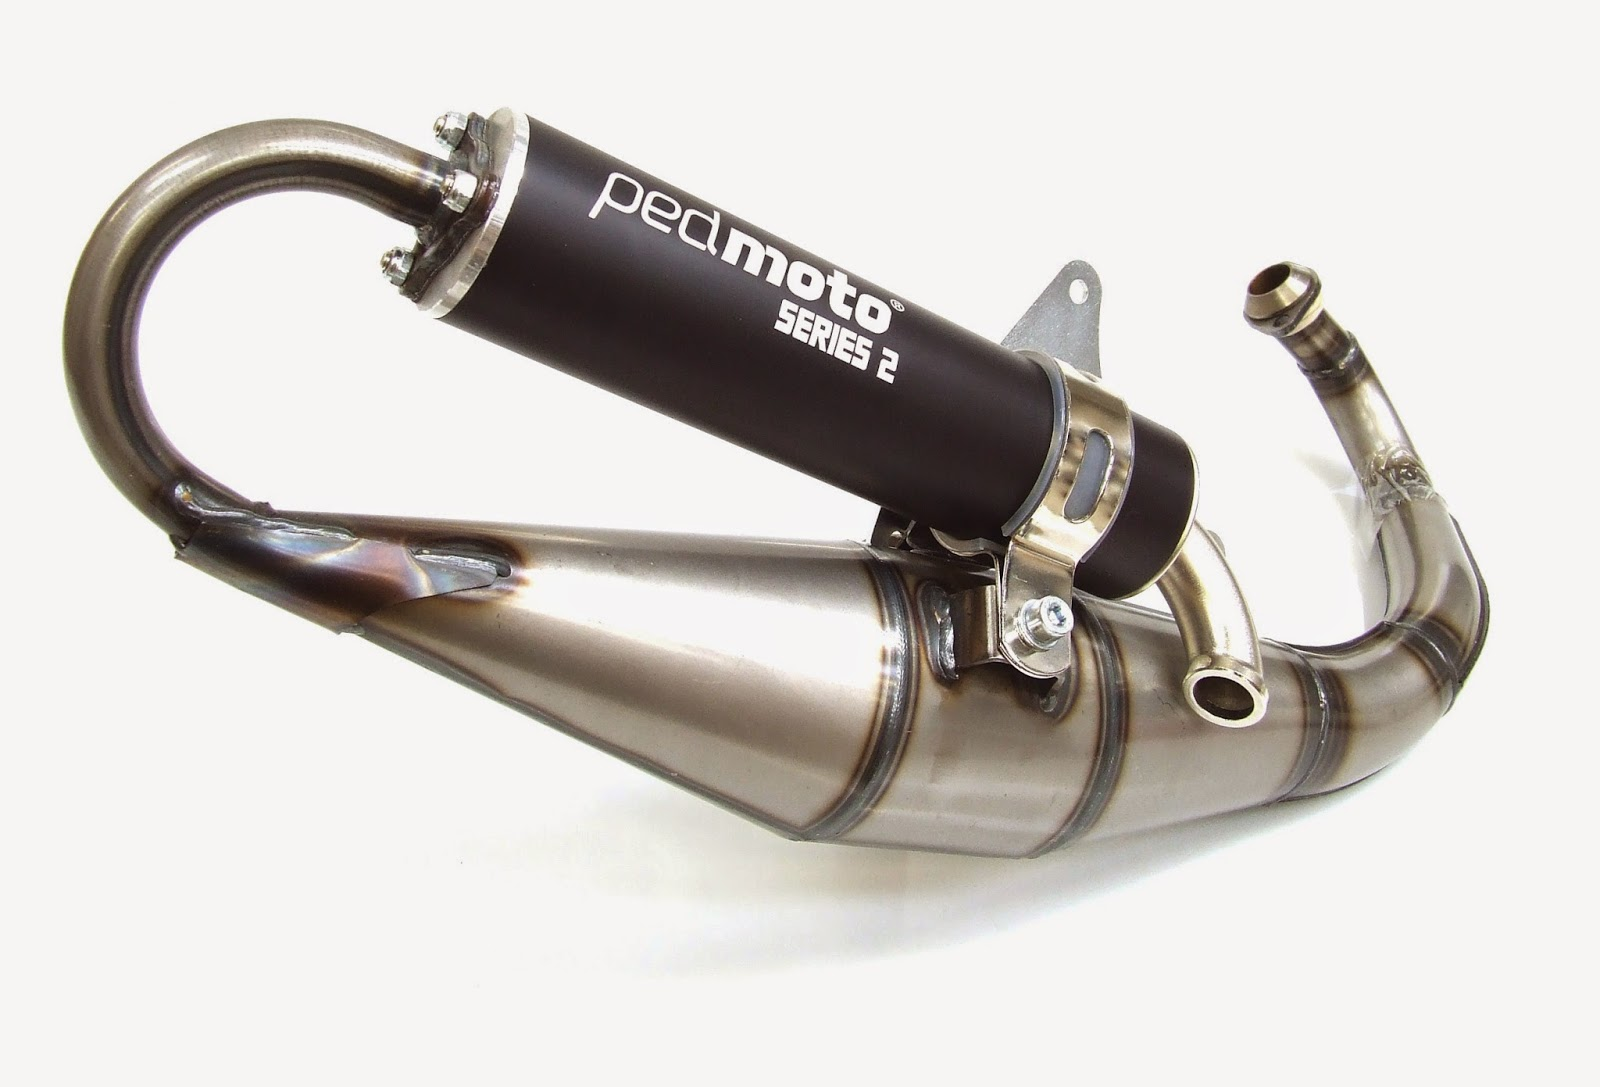 Pedmoto Series 2 Exhaust For Gilera Runner And Piaggio Zip Mk2